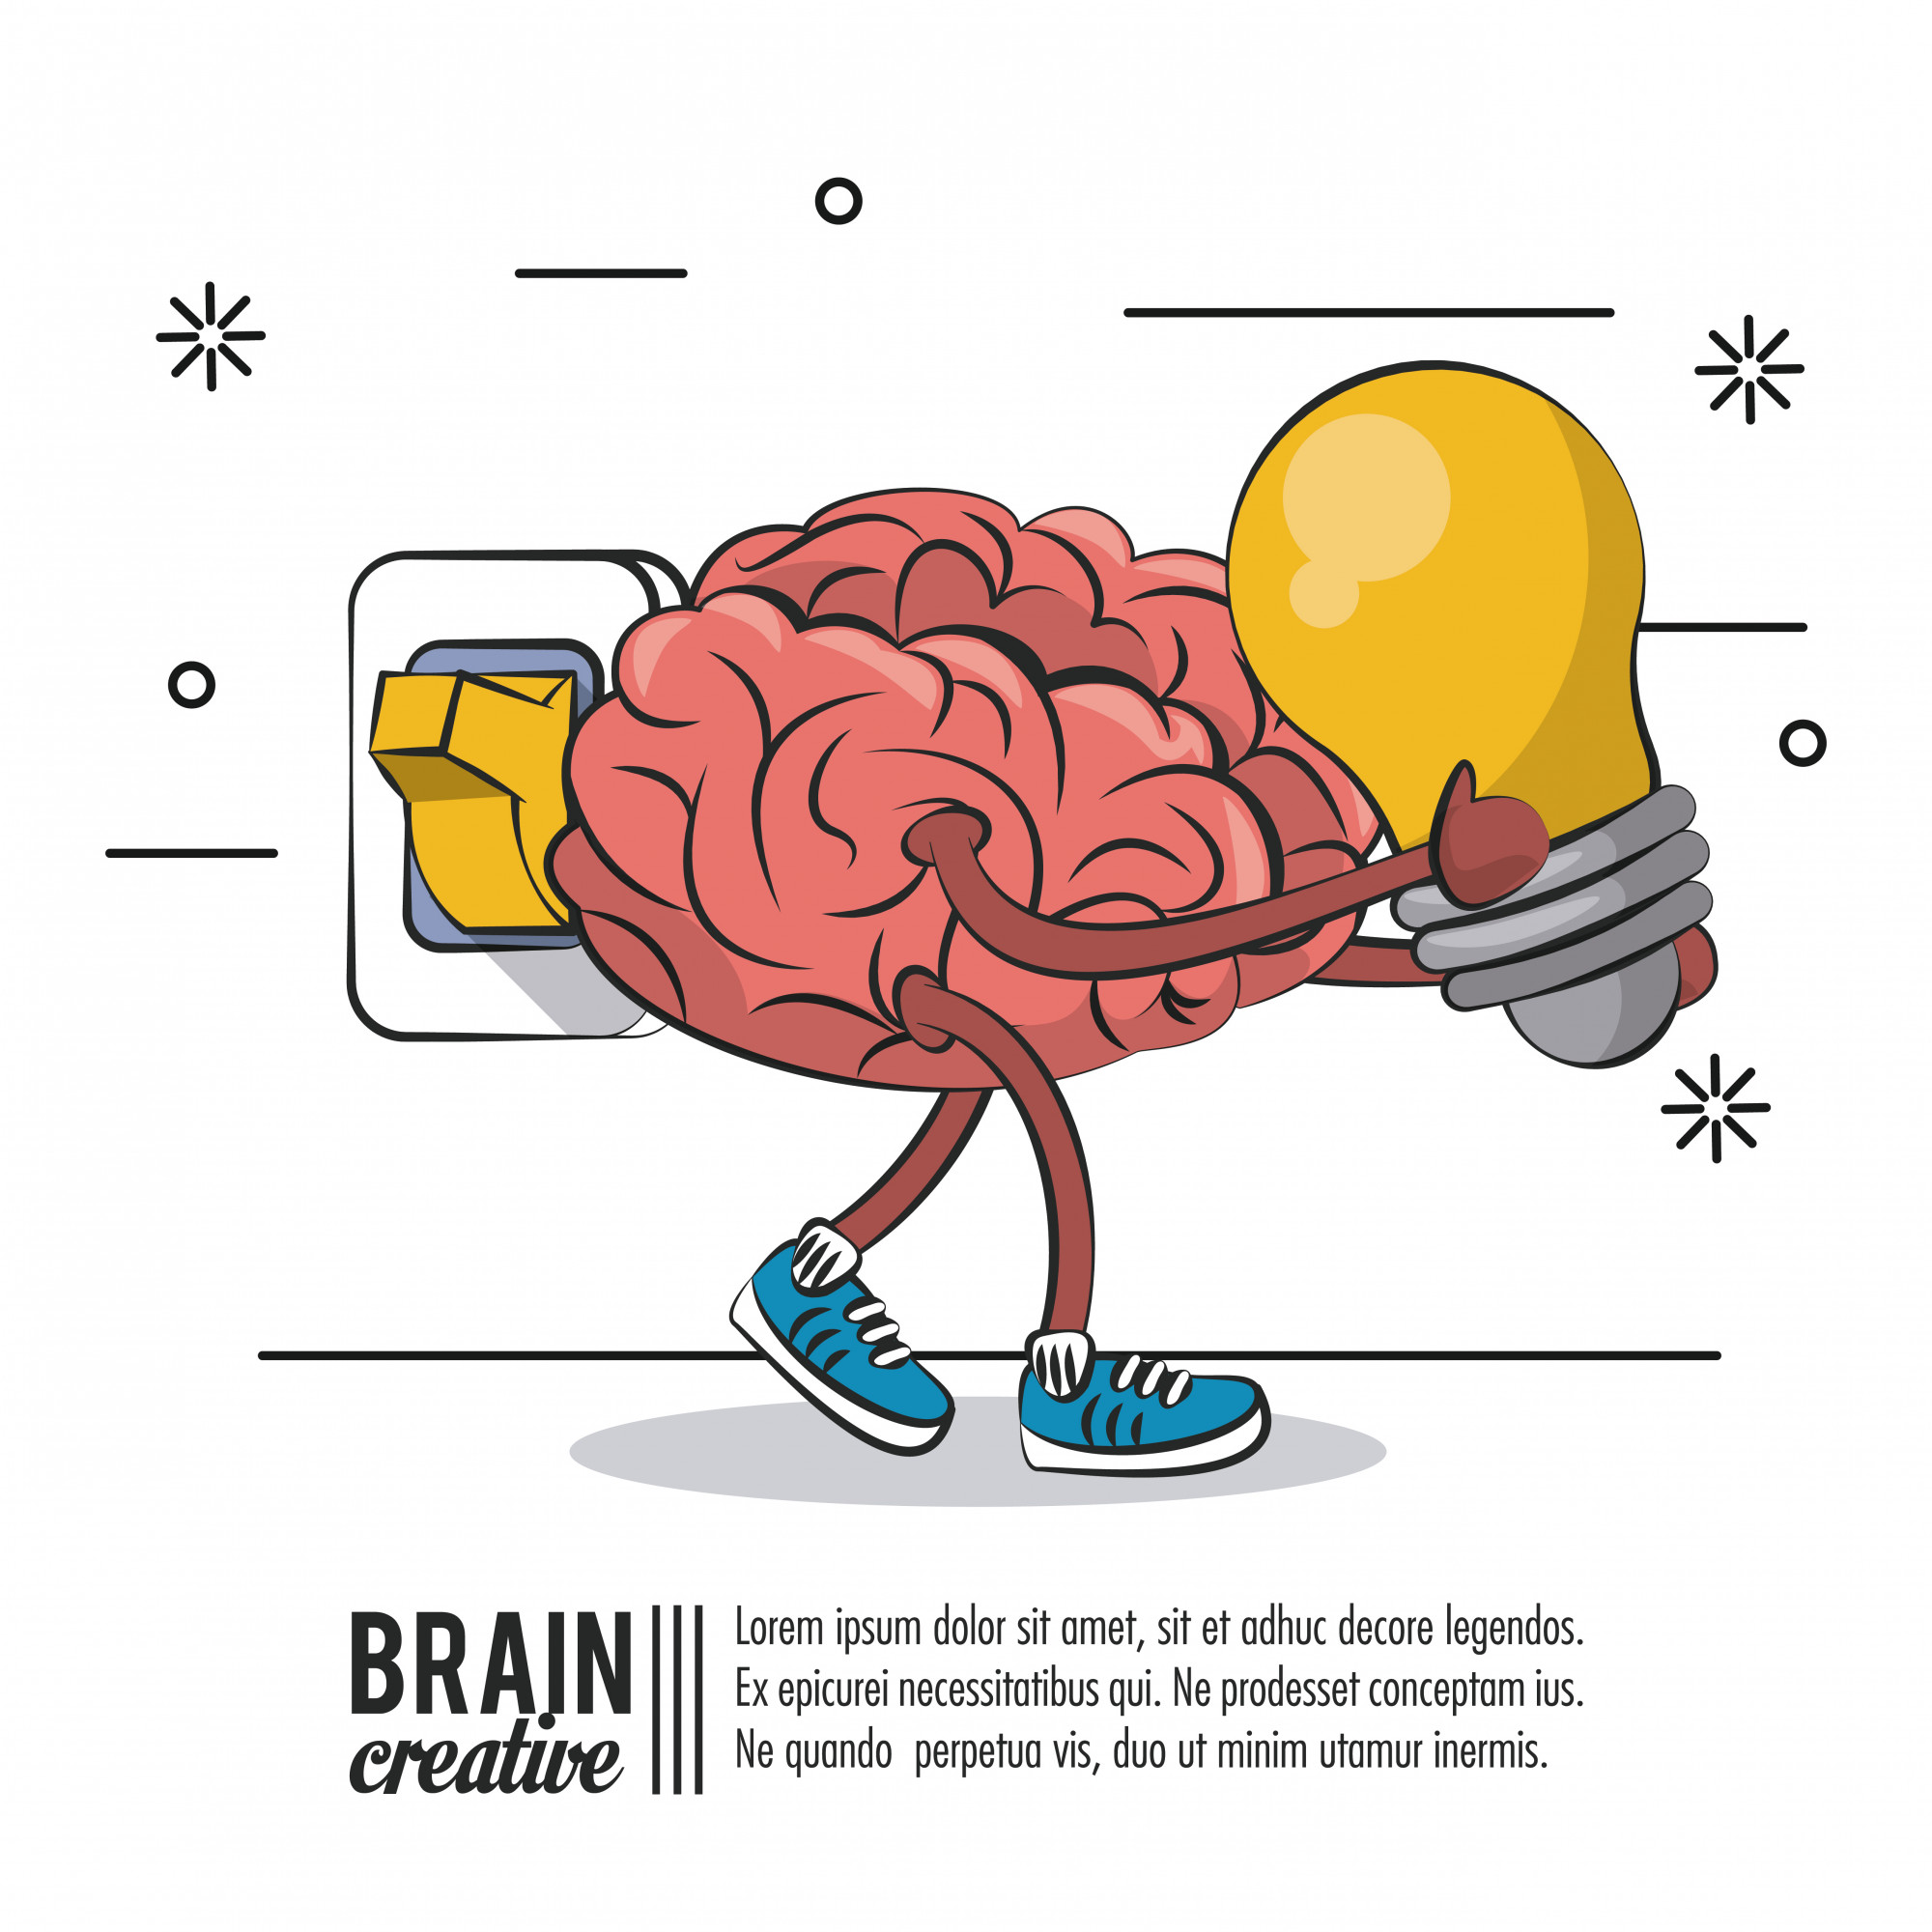 Brain creative poster with information